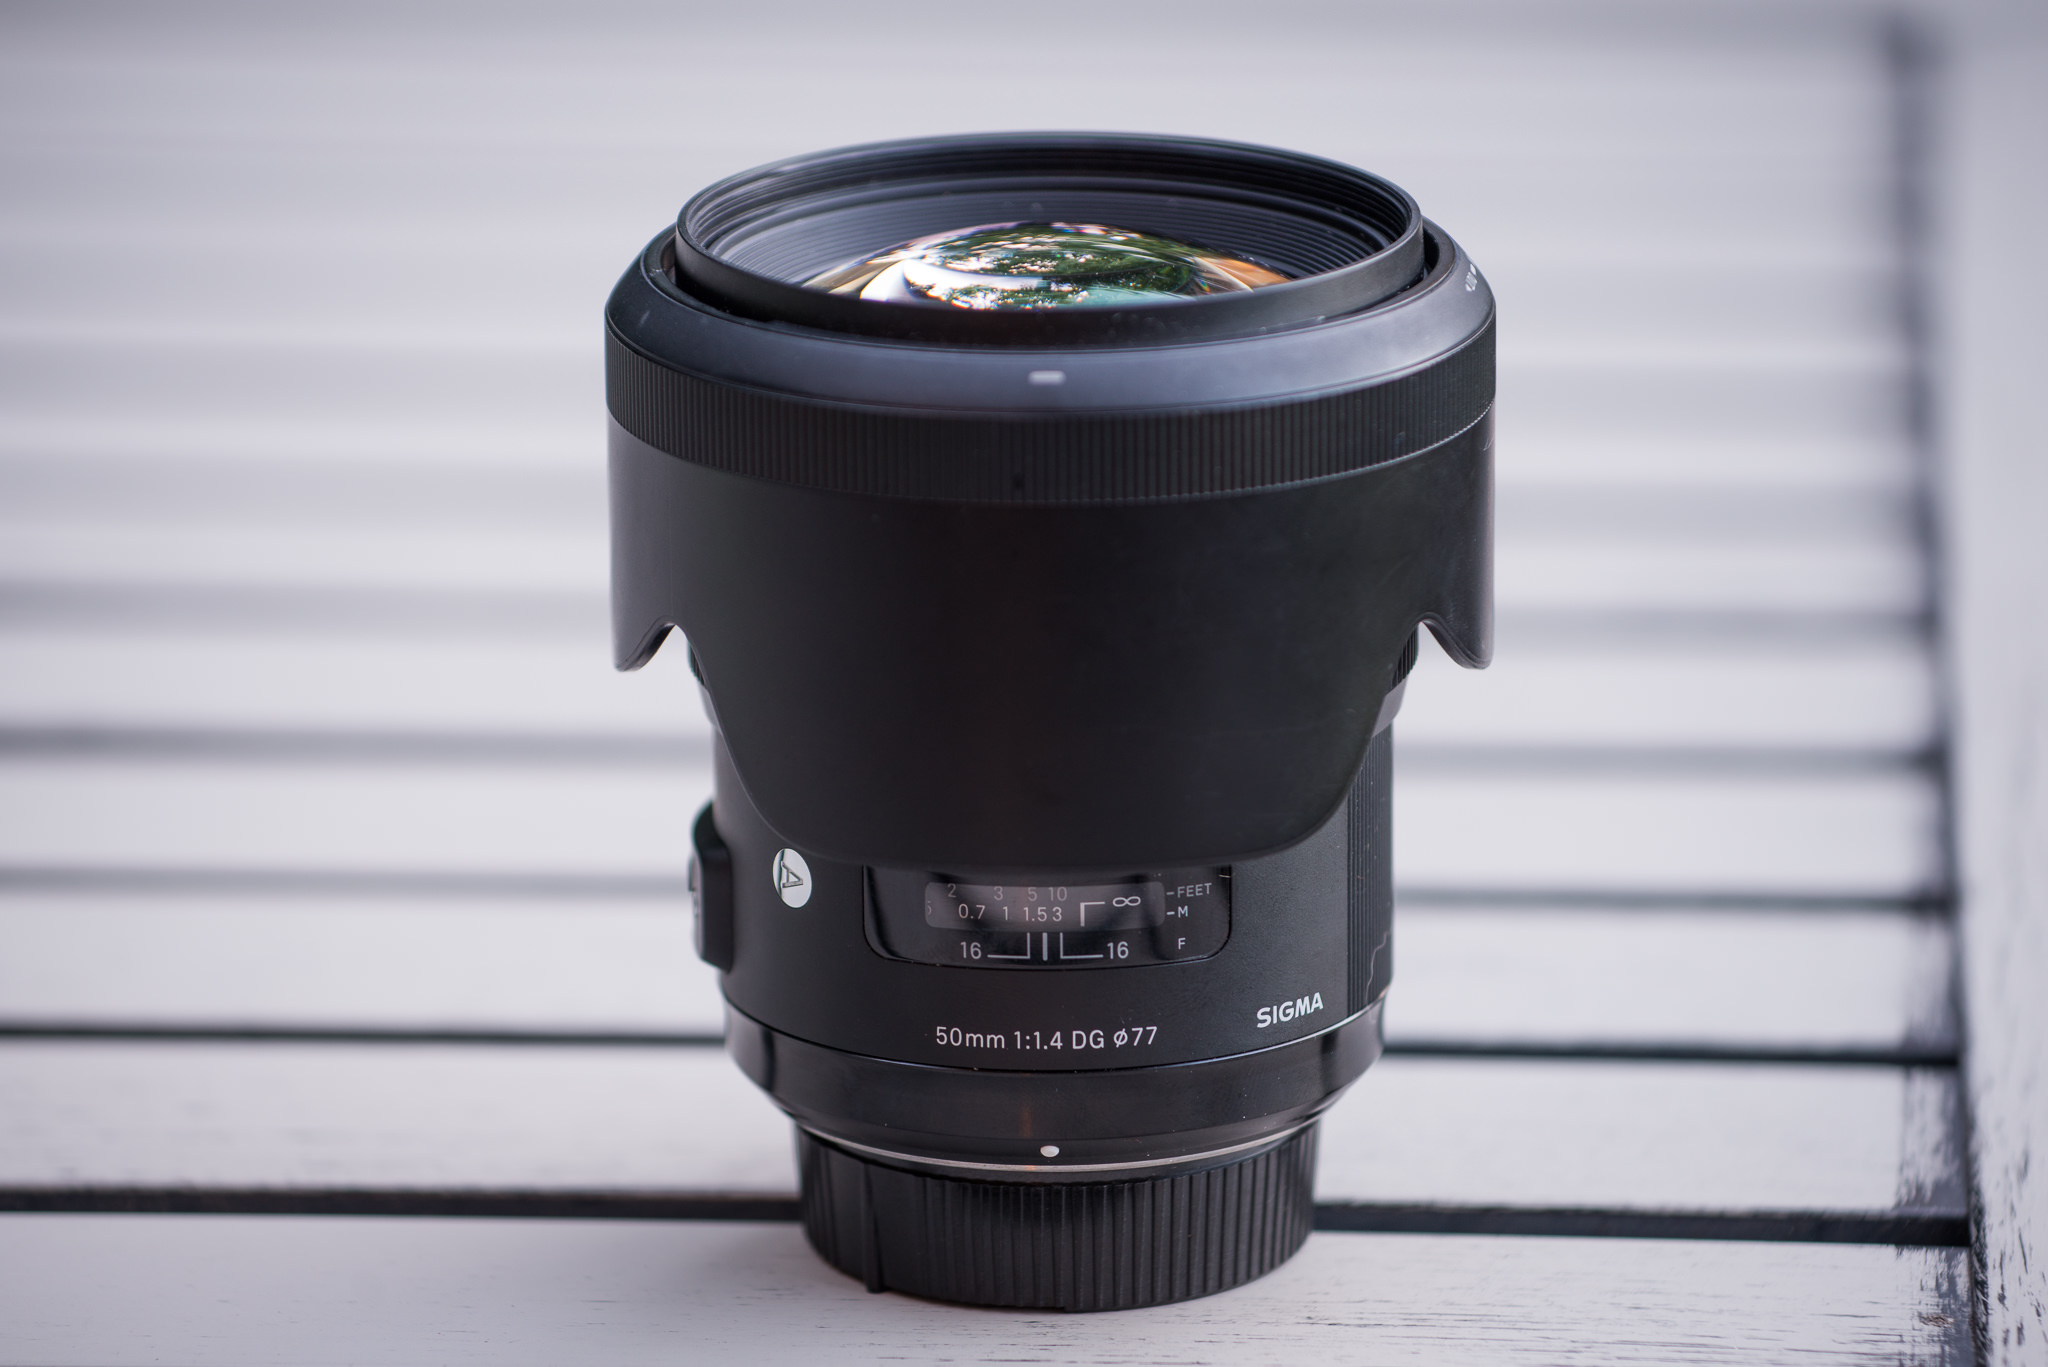 5ee6e41243f8 Although that s a bit bulkier than the lens on its own